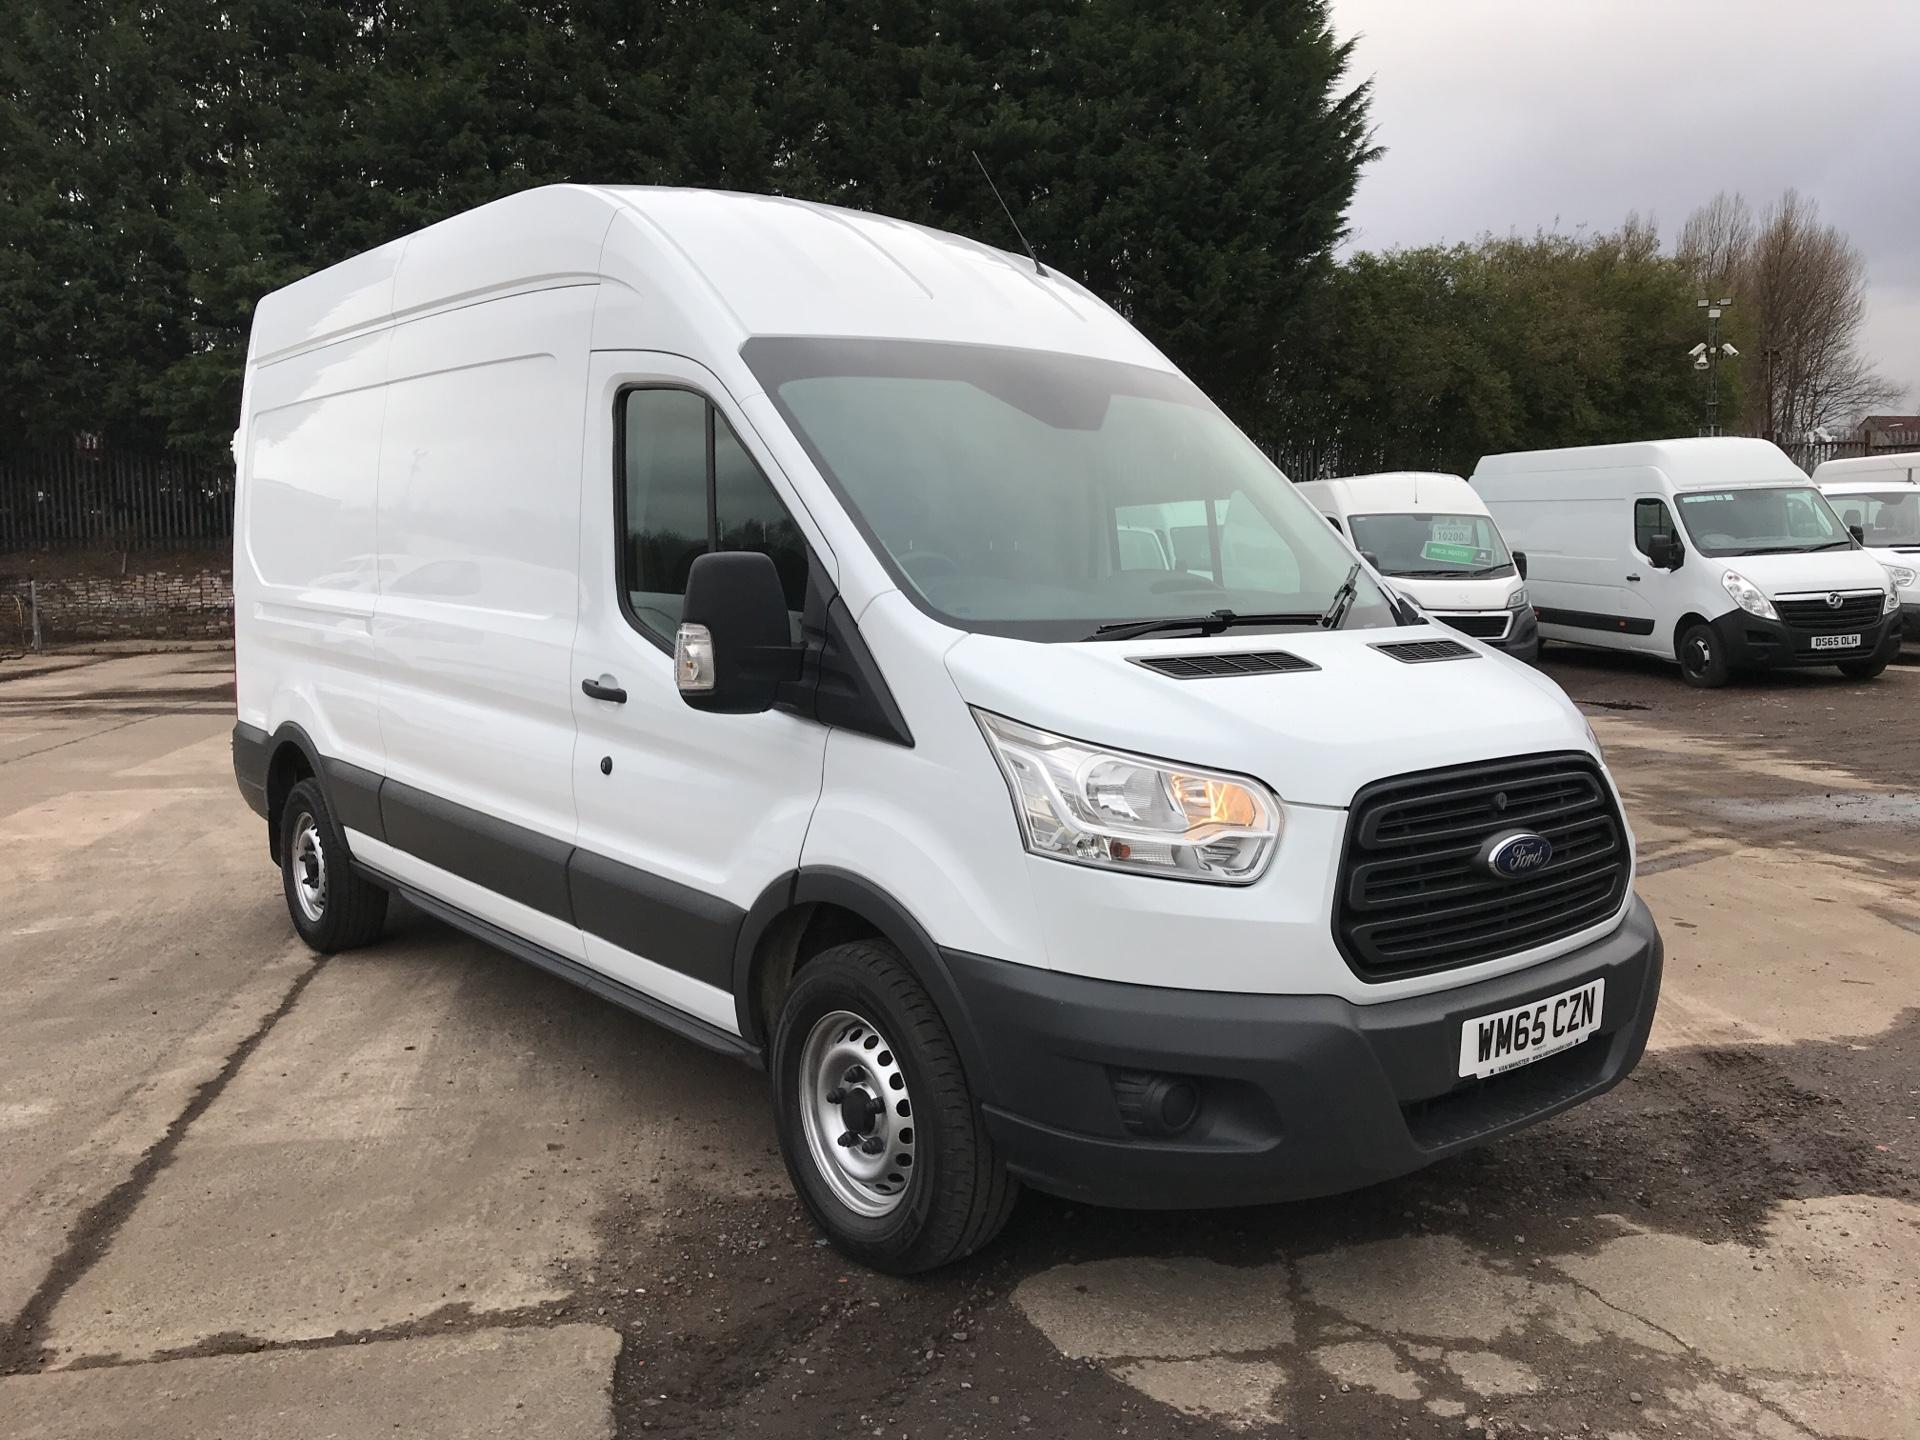 2015 Ford Transit 350 L3 H3 125PS VAN EURO 5 (WM65CZN)